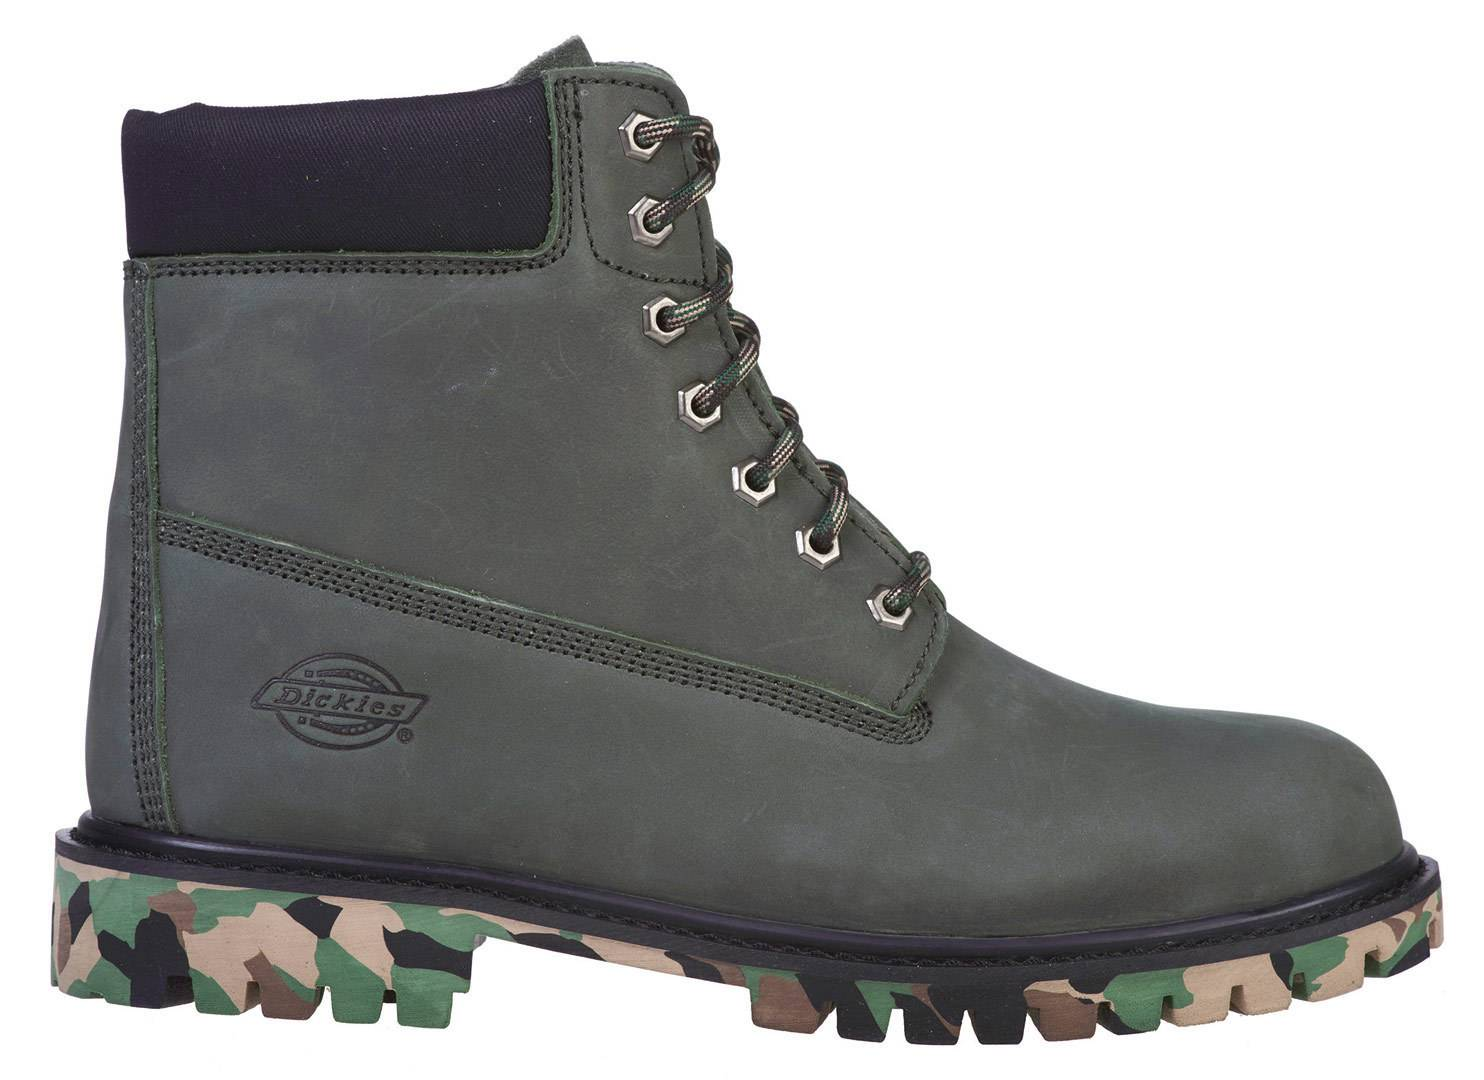 Dickies San Francisco Chaussures Vert Brun taille : 43